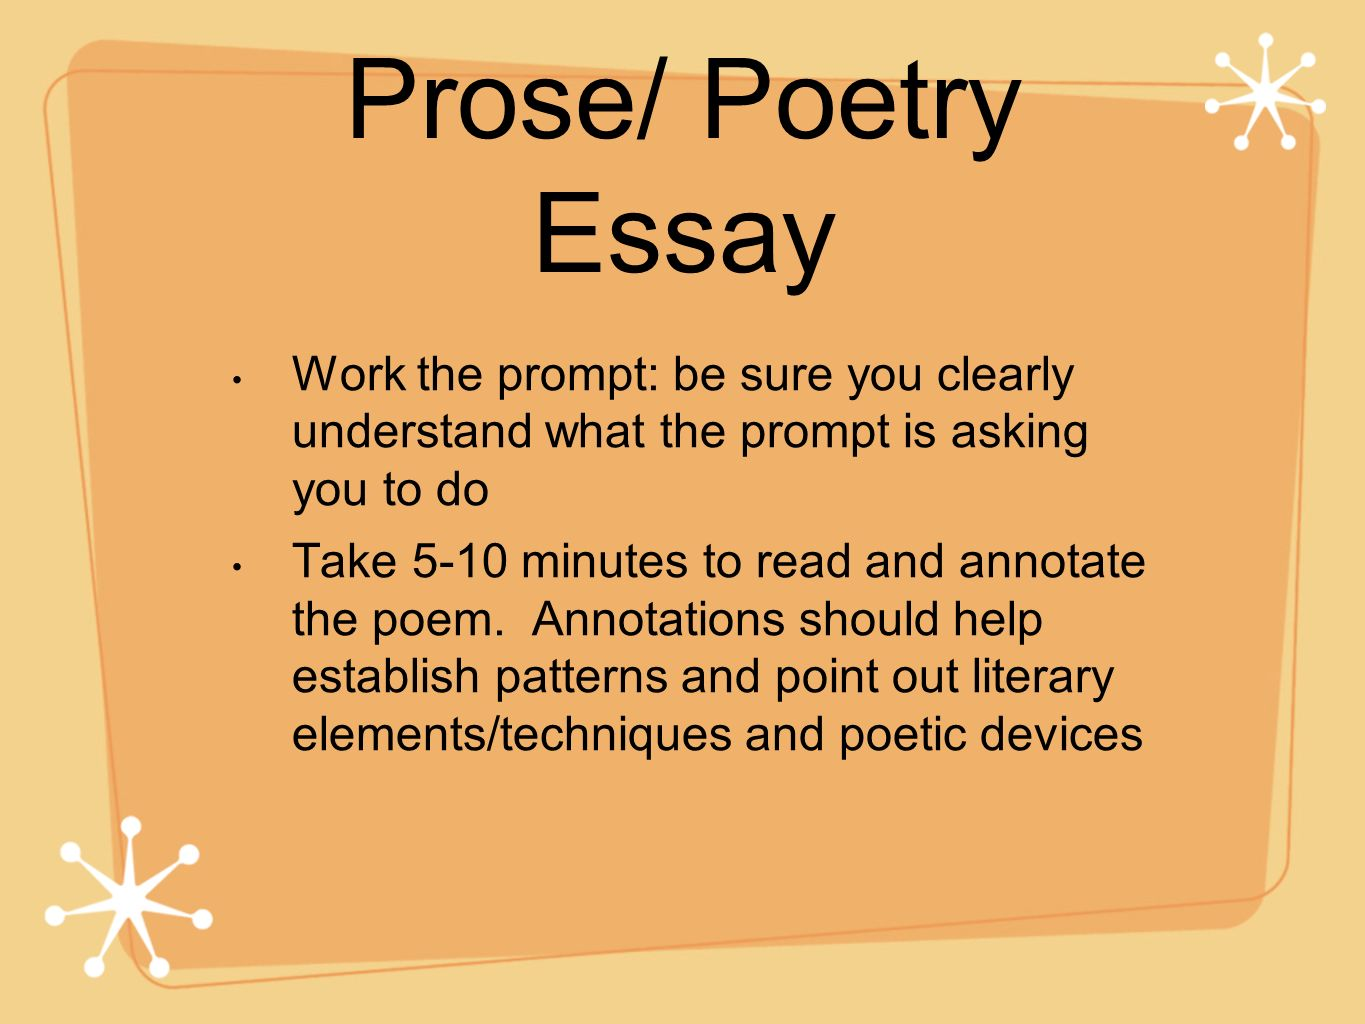 Prose/ Poetry Essay Work the prompt: be sure you clearly understand what the prompt is asking you to do.